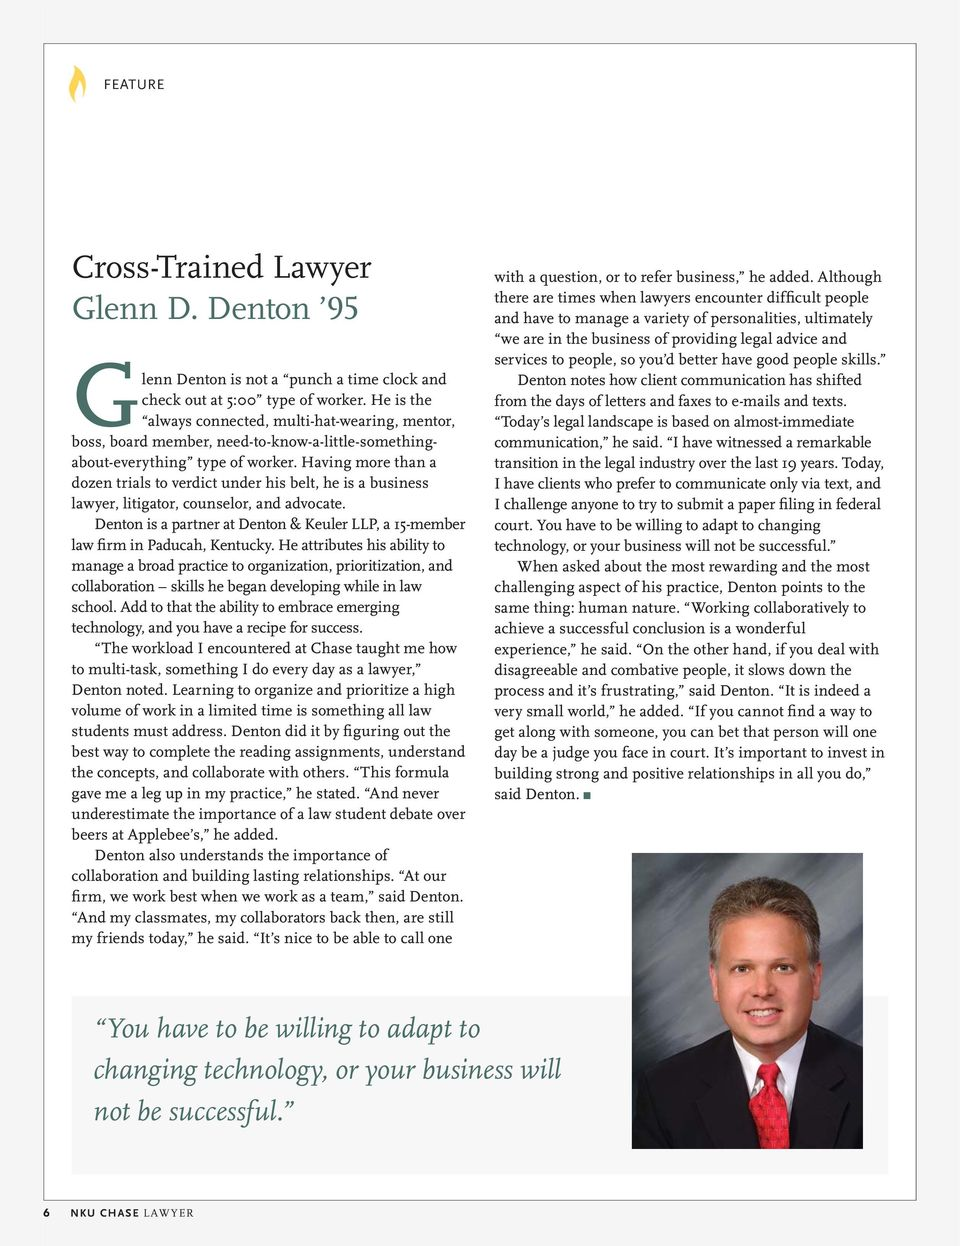 Having more than a dozen trials to verdict under his belt, he is a business lawyer, litigator, counselor, and advocate.